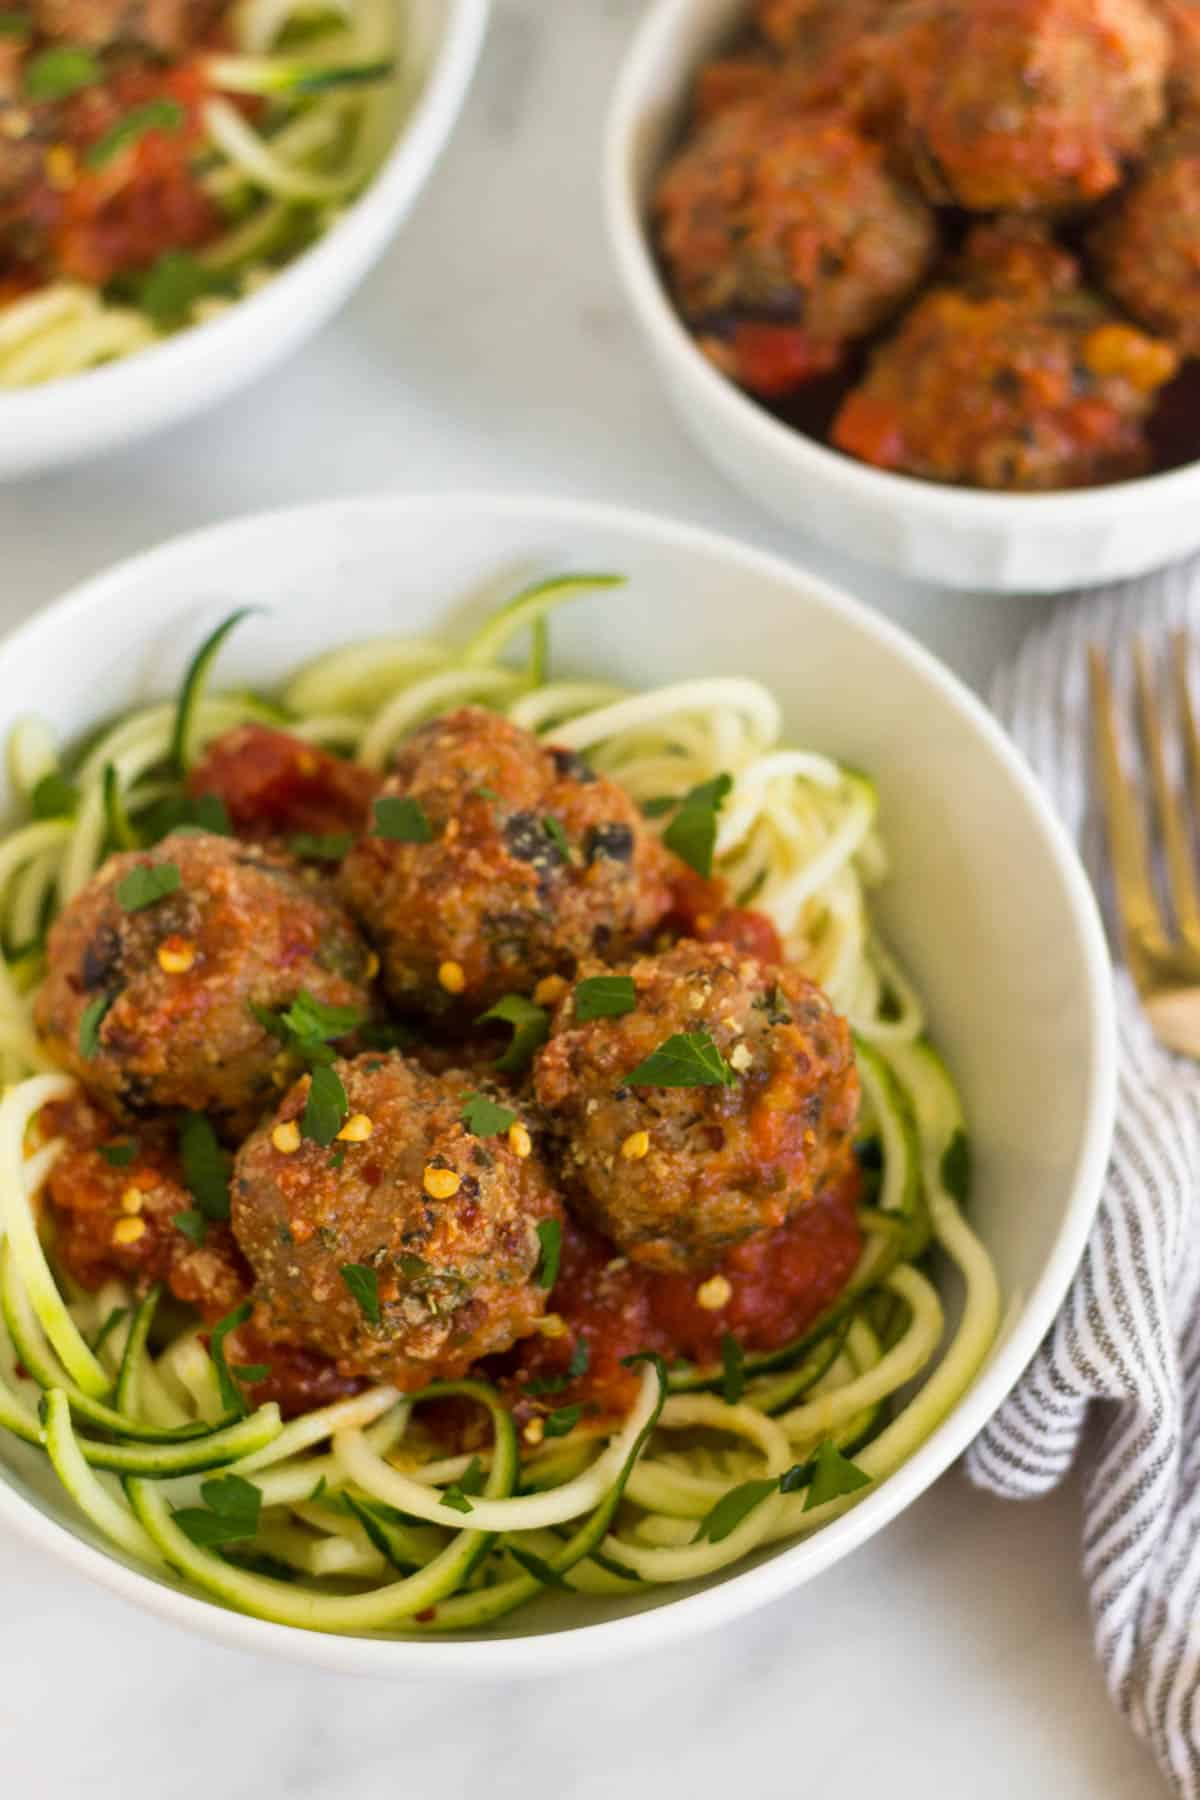 Bowl of zucchini noodles and supreme pizza meatballs with a smaller bowl of meatballs and sauce and another bowl of zucchini noodles in the background